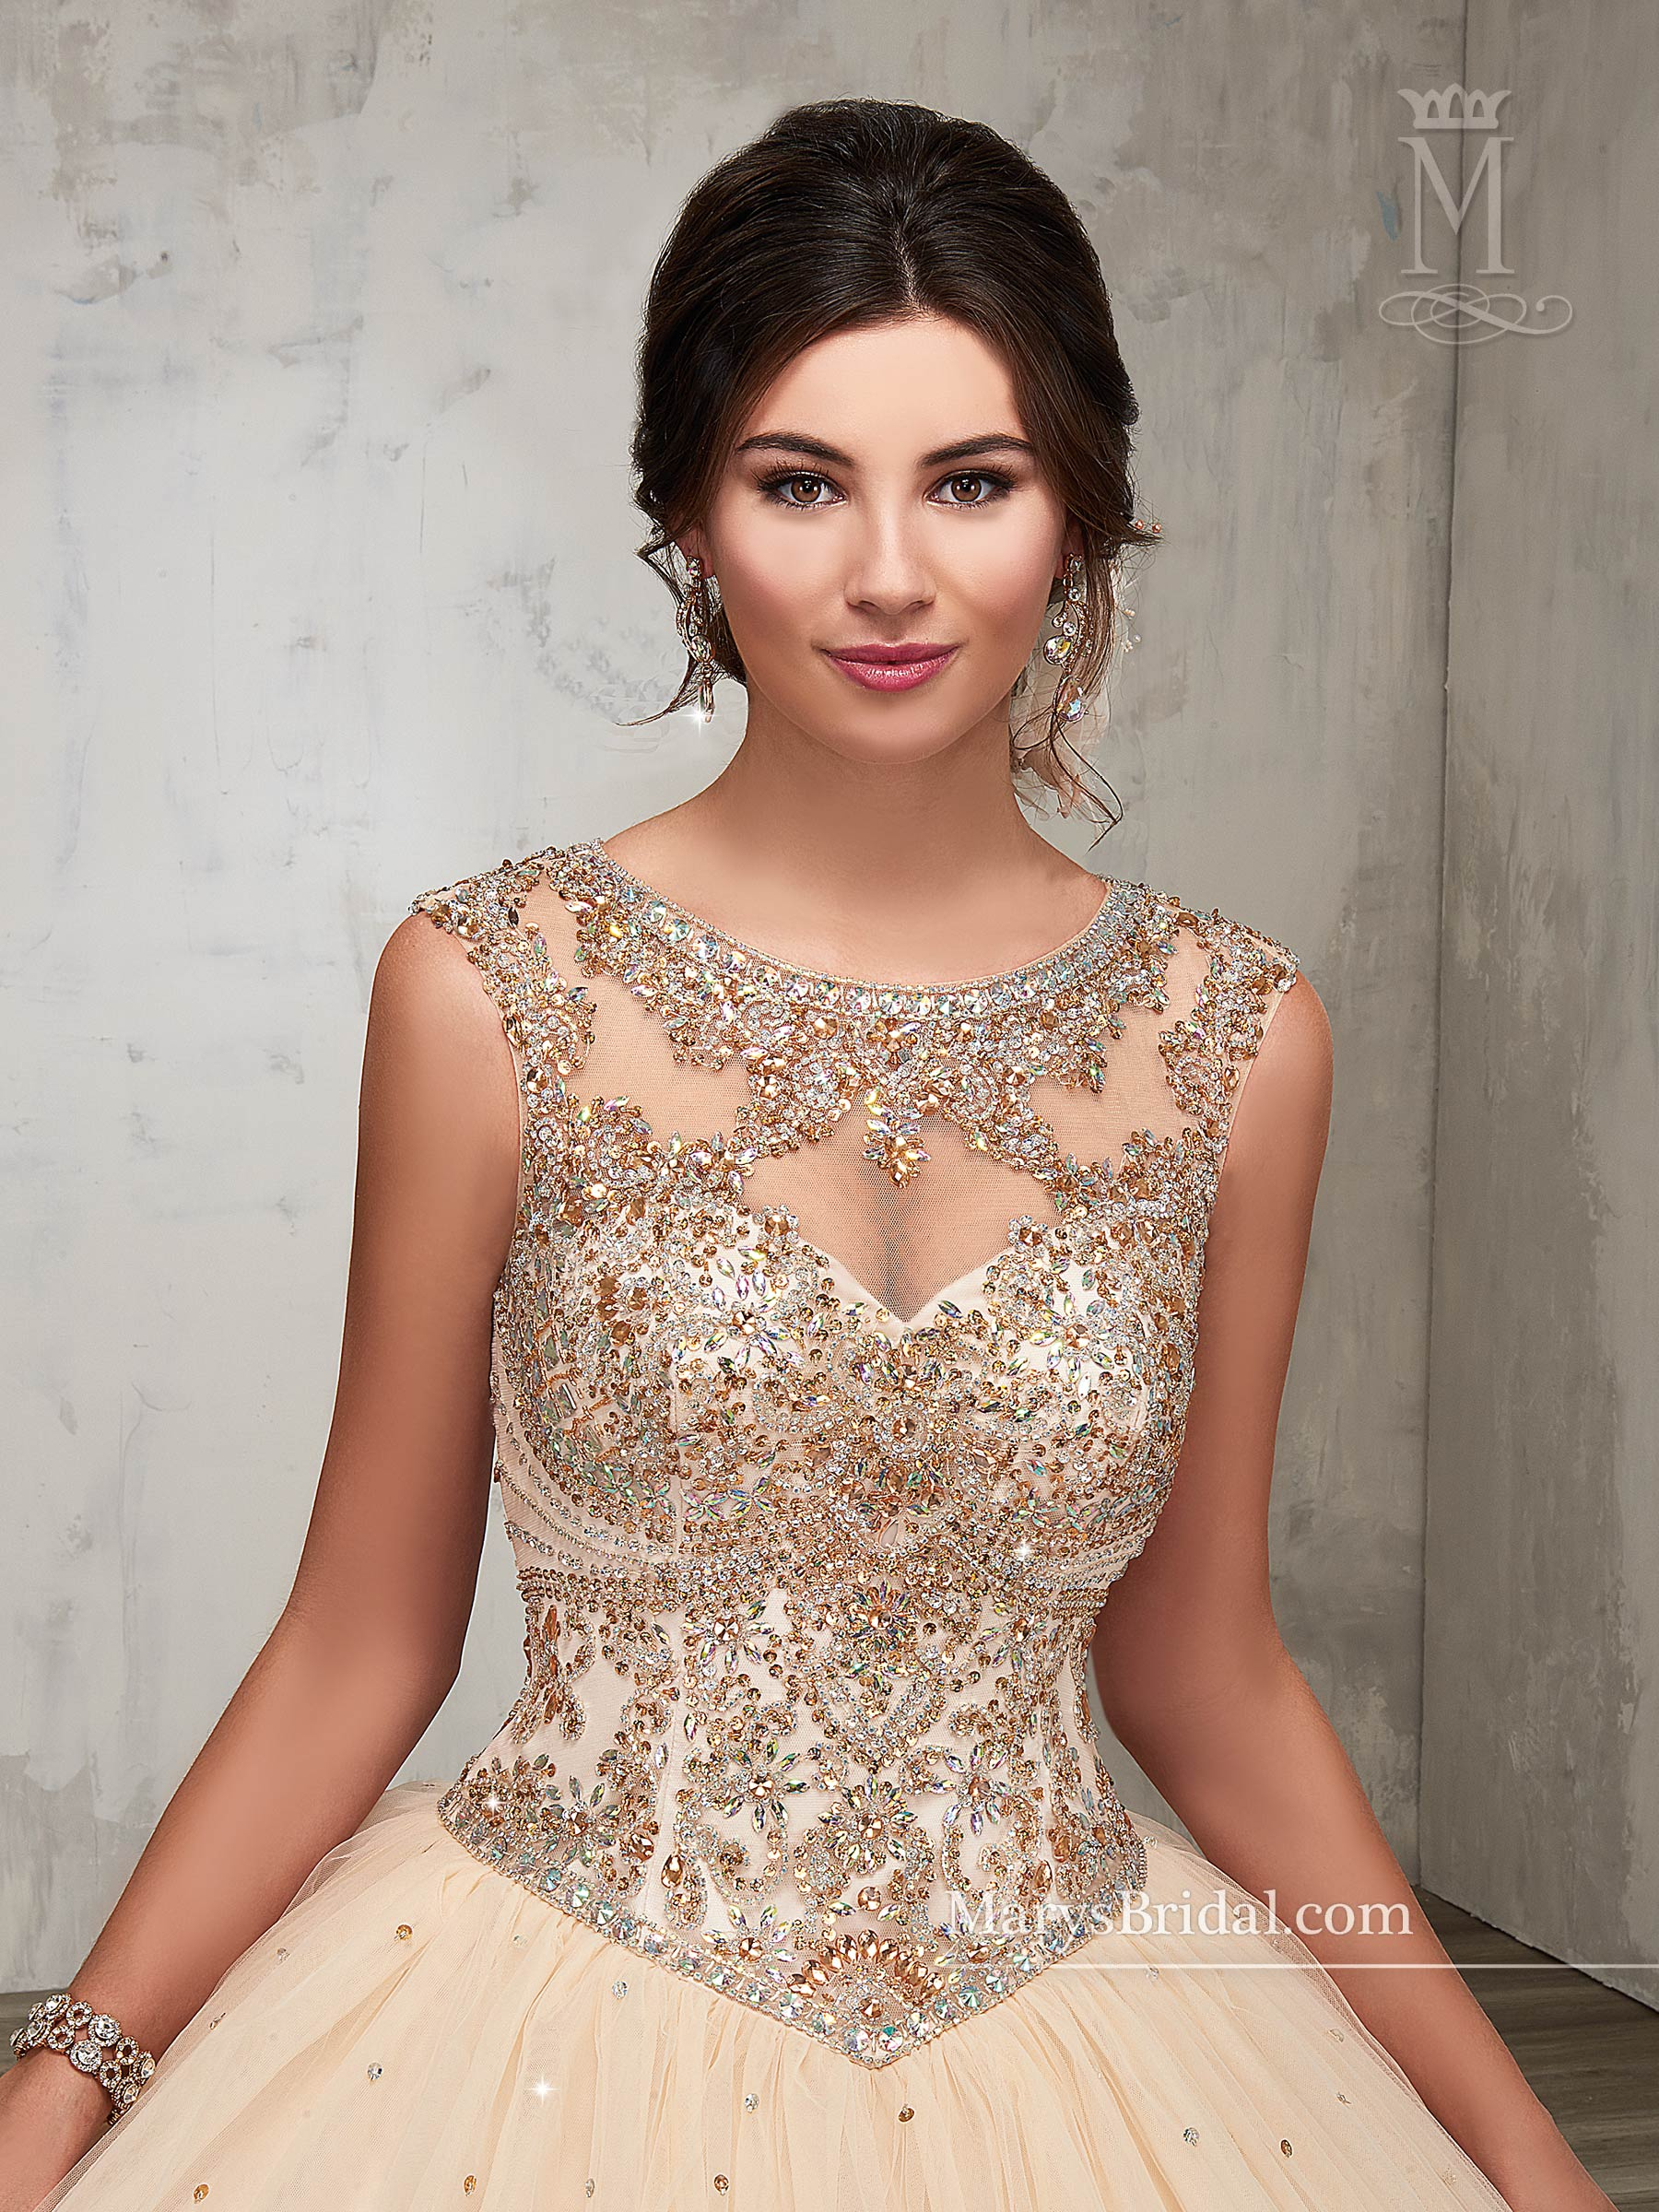 Marys Quinceanera Dresses | Mary's Quinceanera | Style - 4804